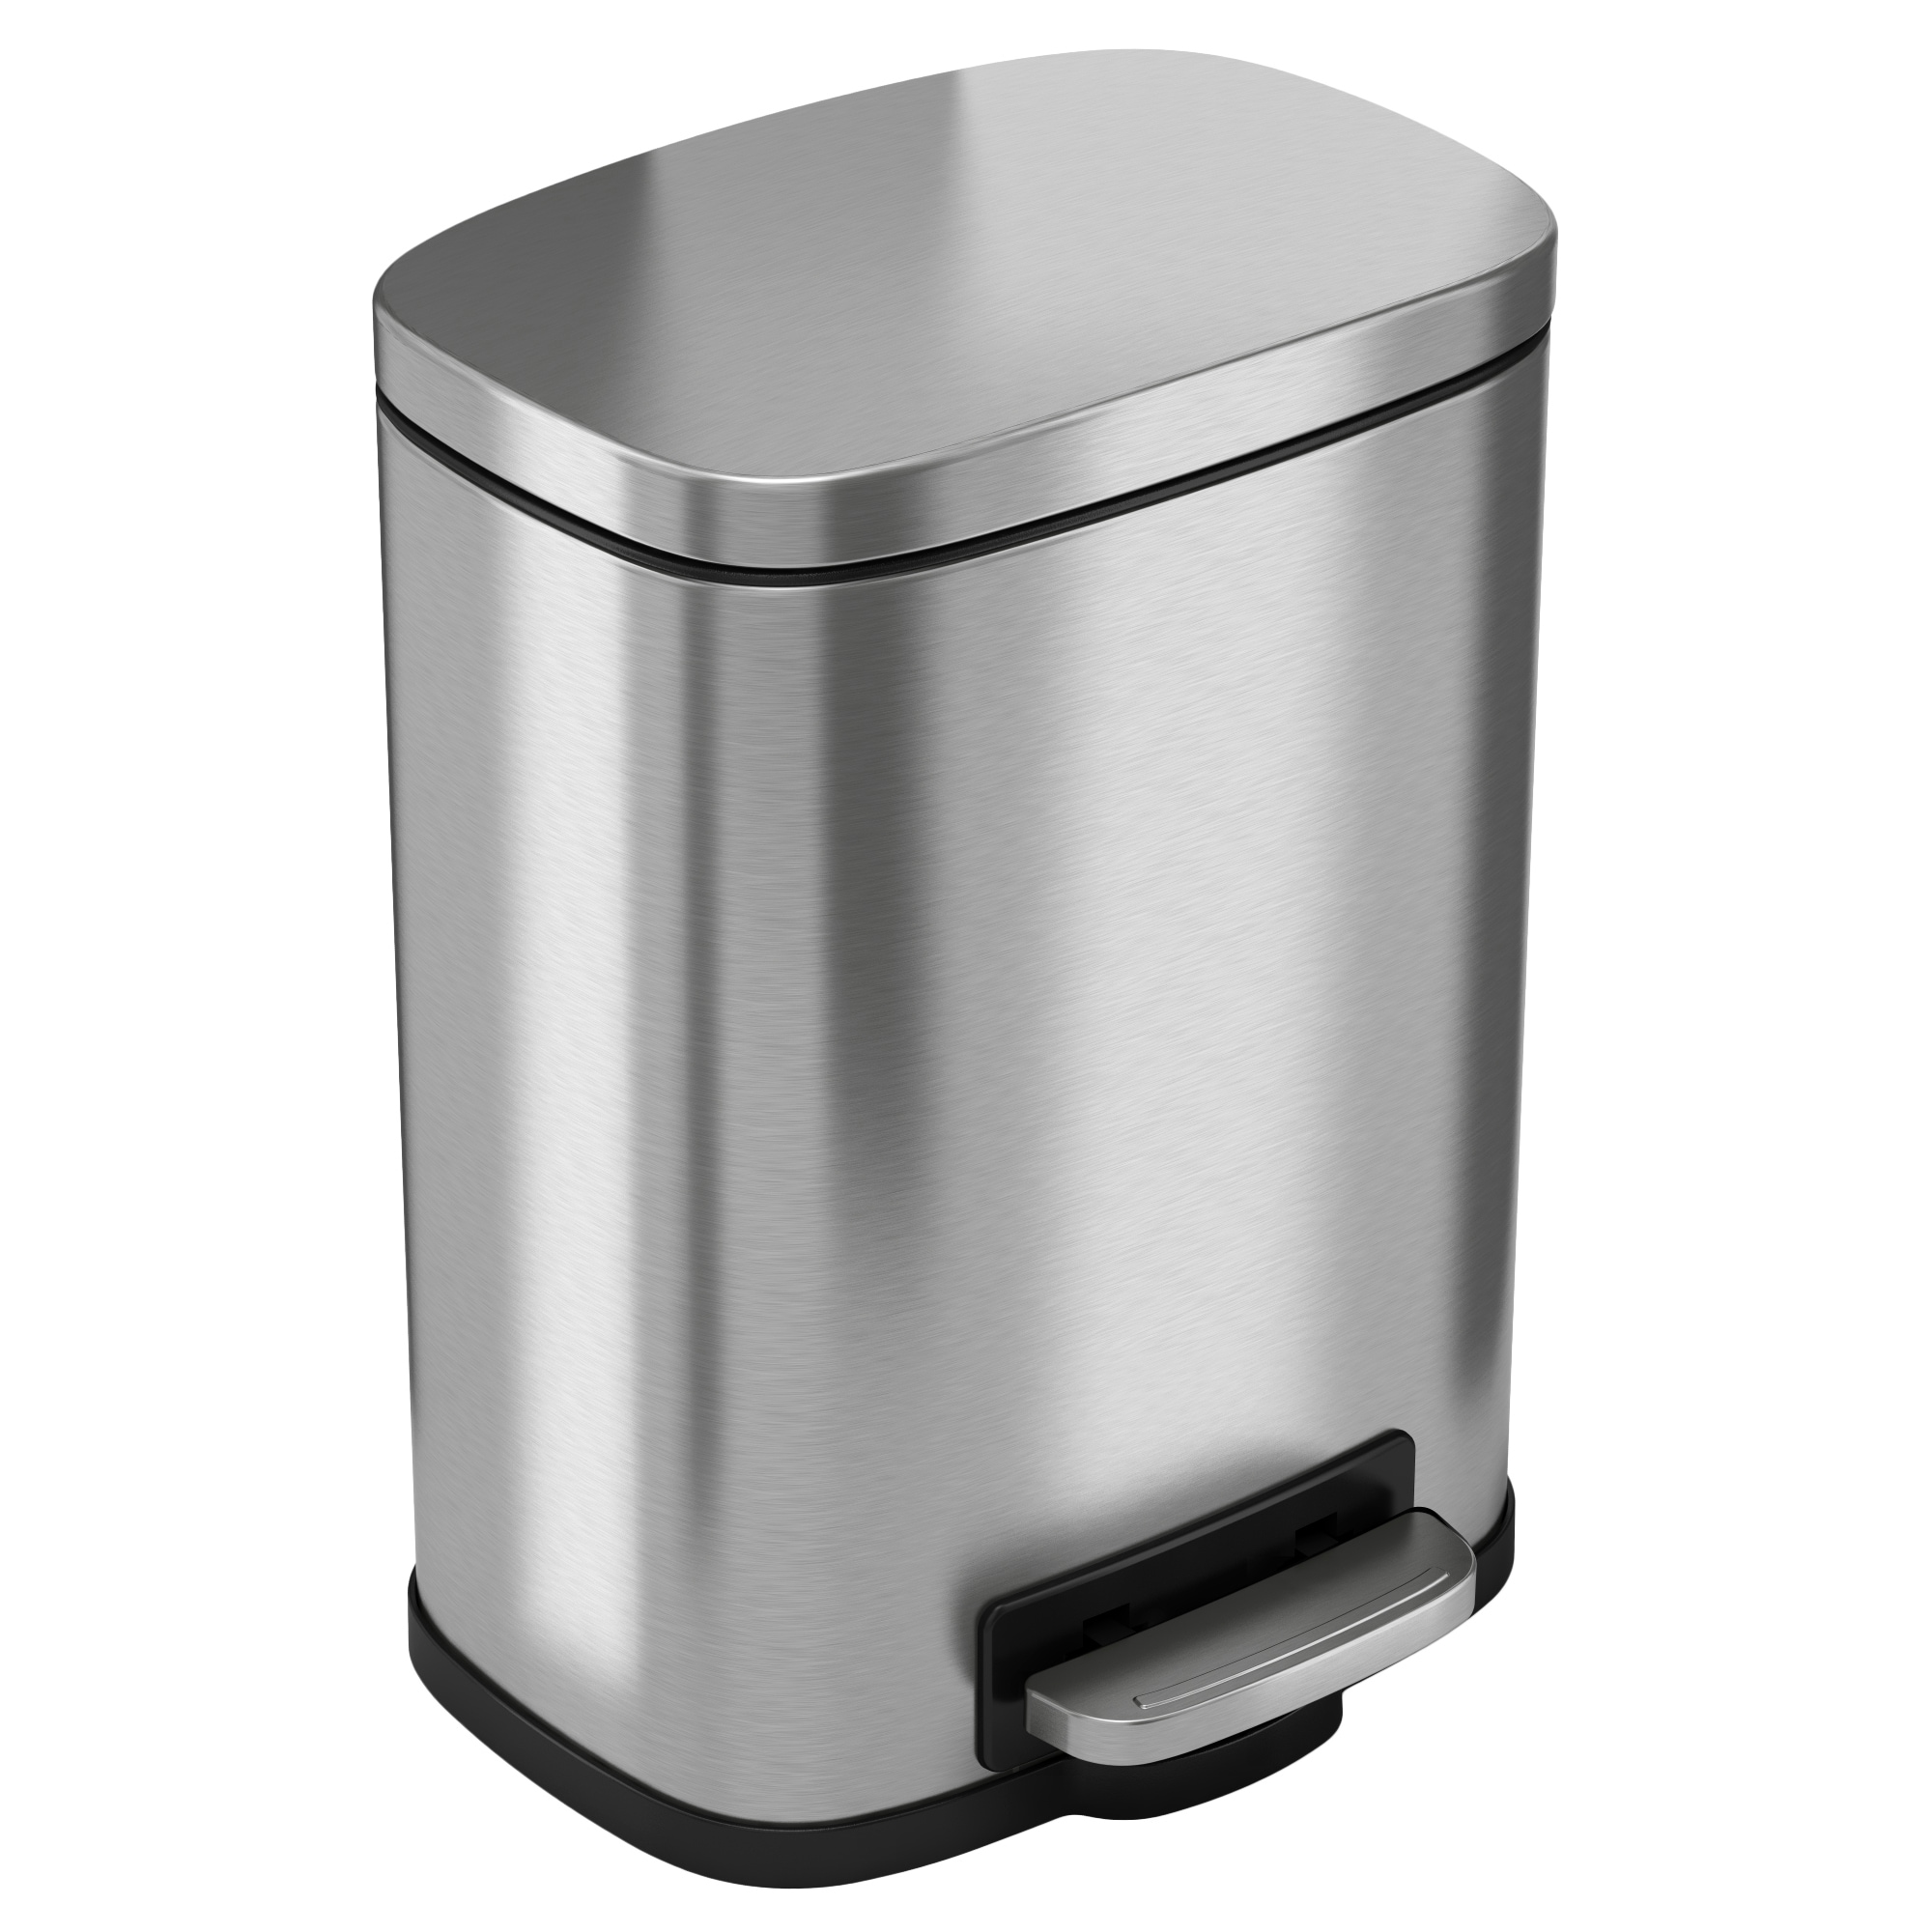 Shop Halo Premium Silvertone Step Stainless Steel Trash Can 1